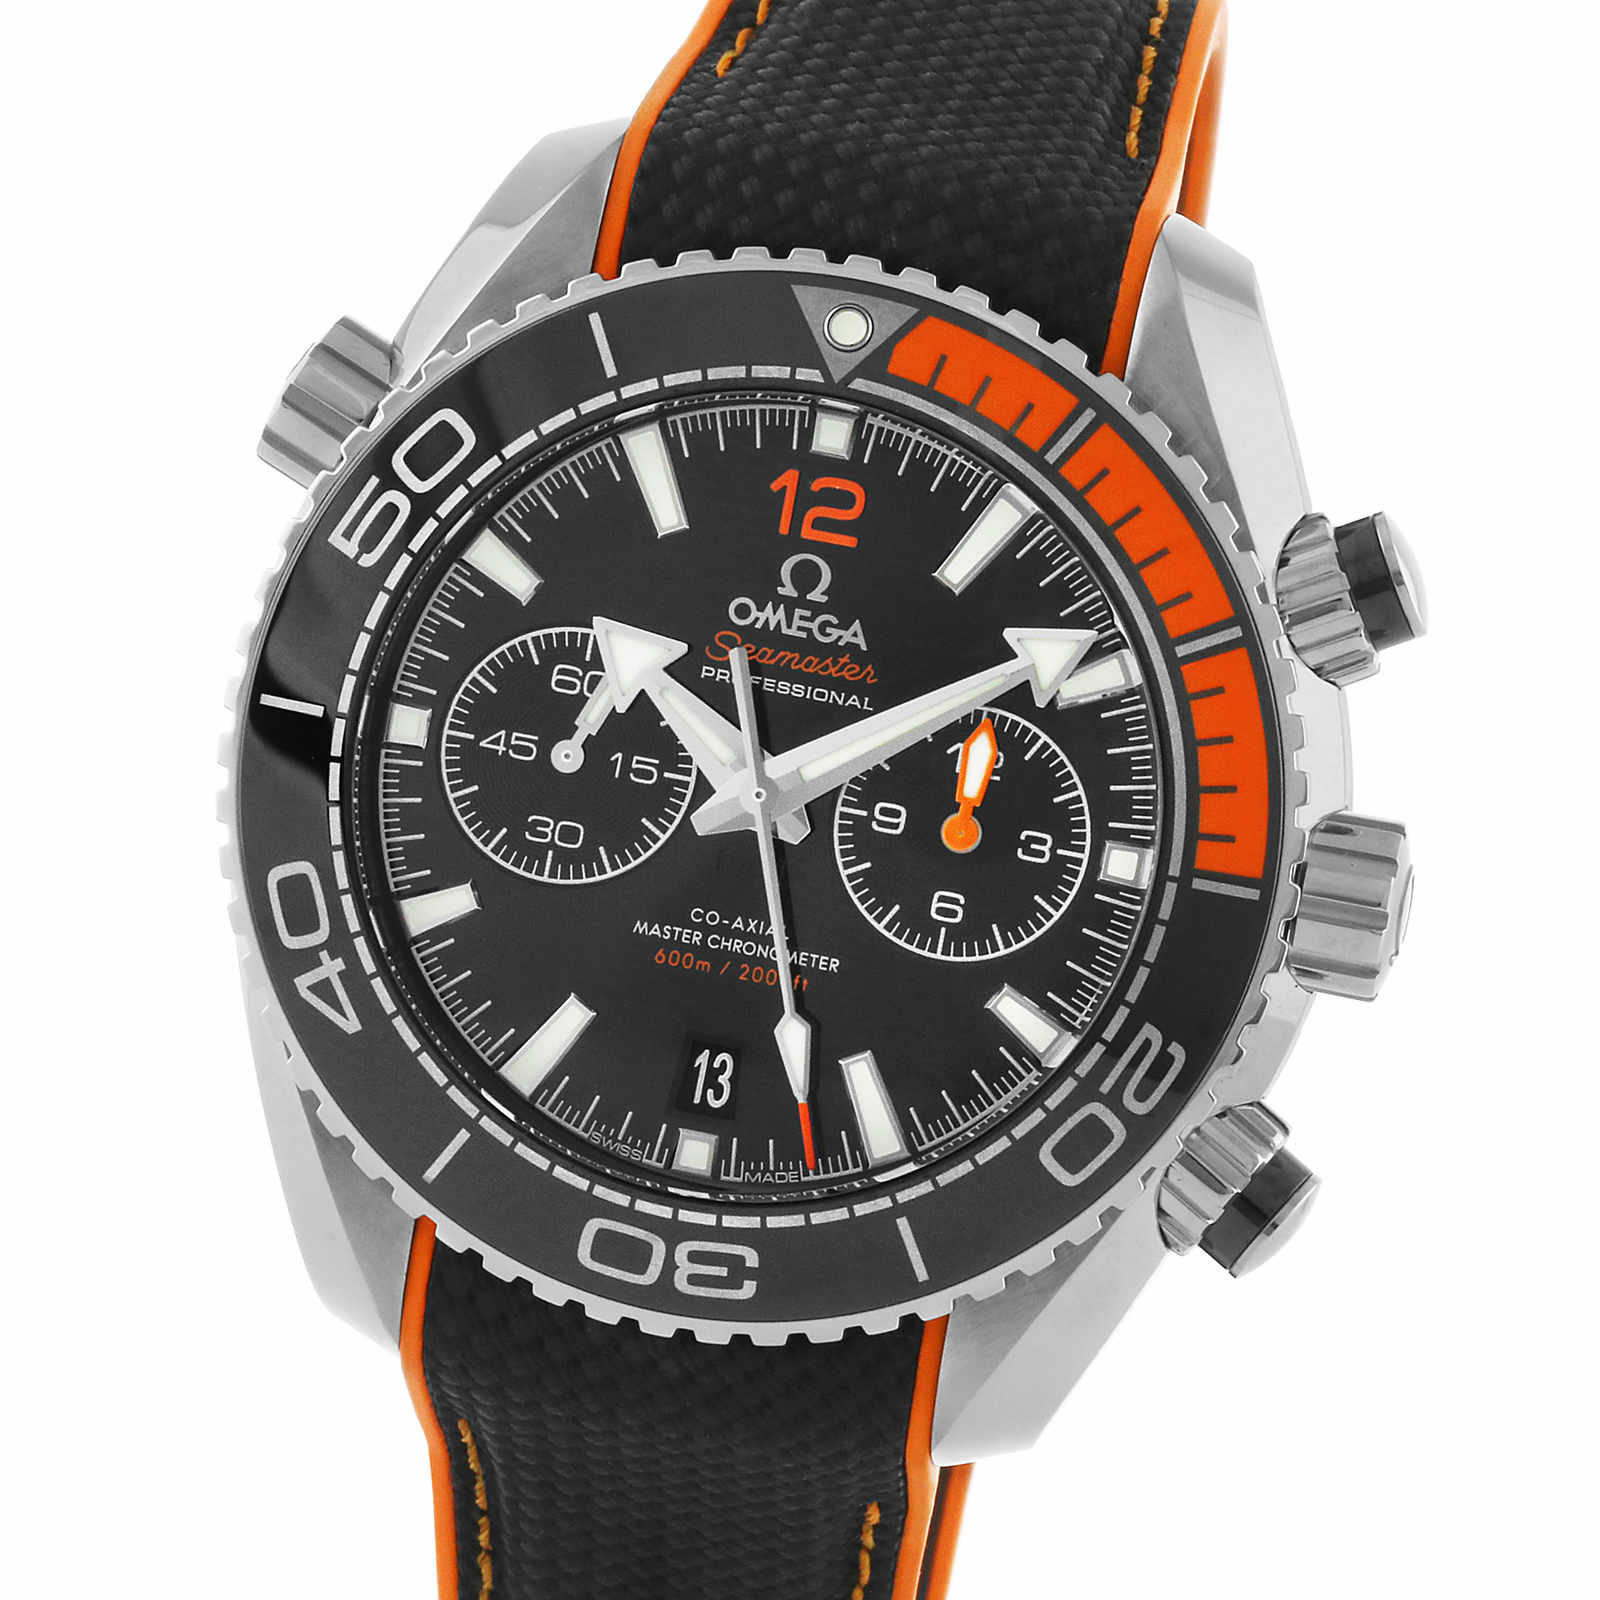 dc2e9aba11d7 Omega Seamaster Planet Ocean 600m Co-Axial Master Chronometer 45.5mm Mens  Watch